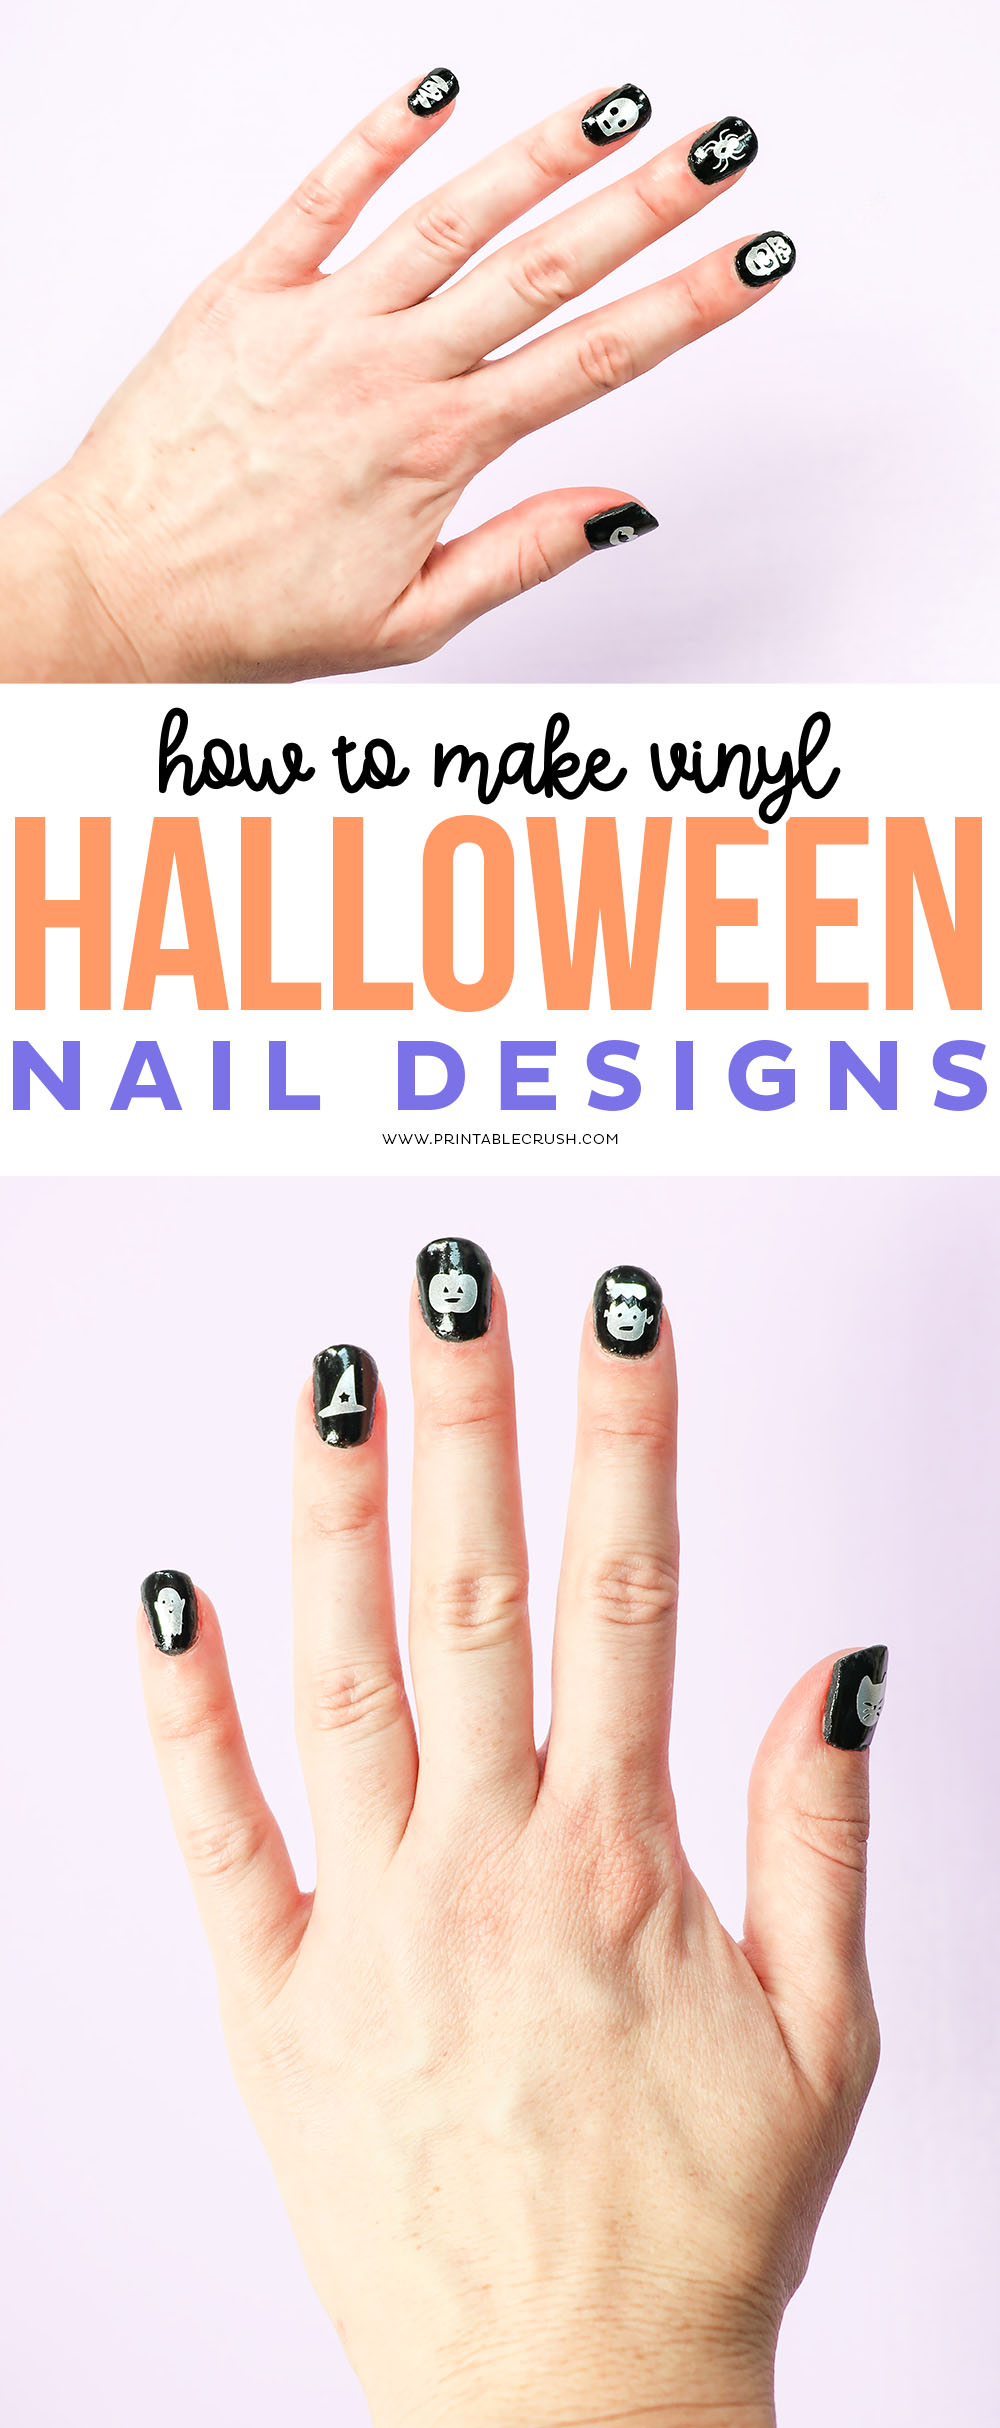 How to Make Vinyl Halloween Nail Designs - Printable Crush #halloween #cricut #cricutcraft #halloweencraft #halloweennails #nailart via @printablecrush